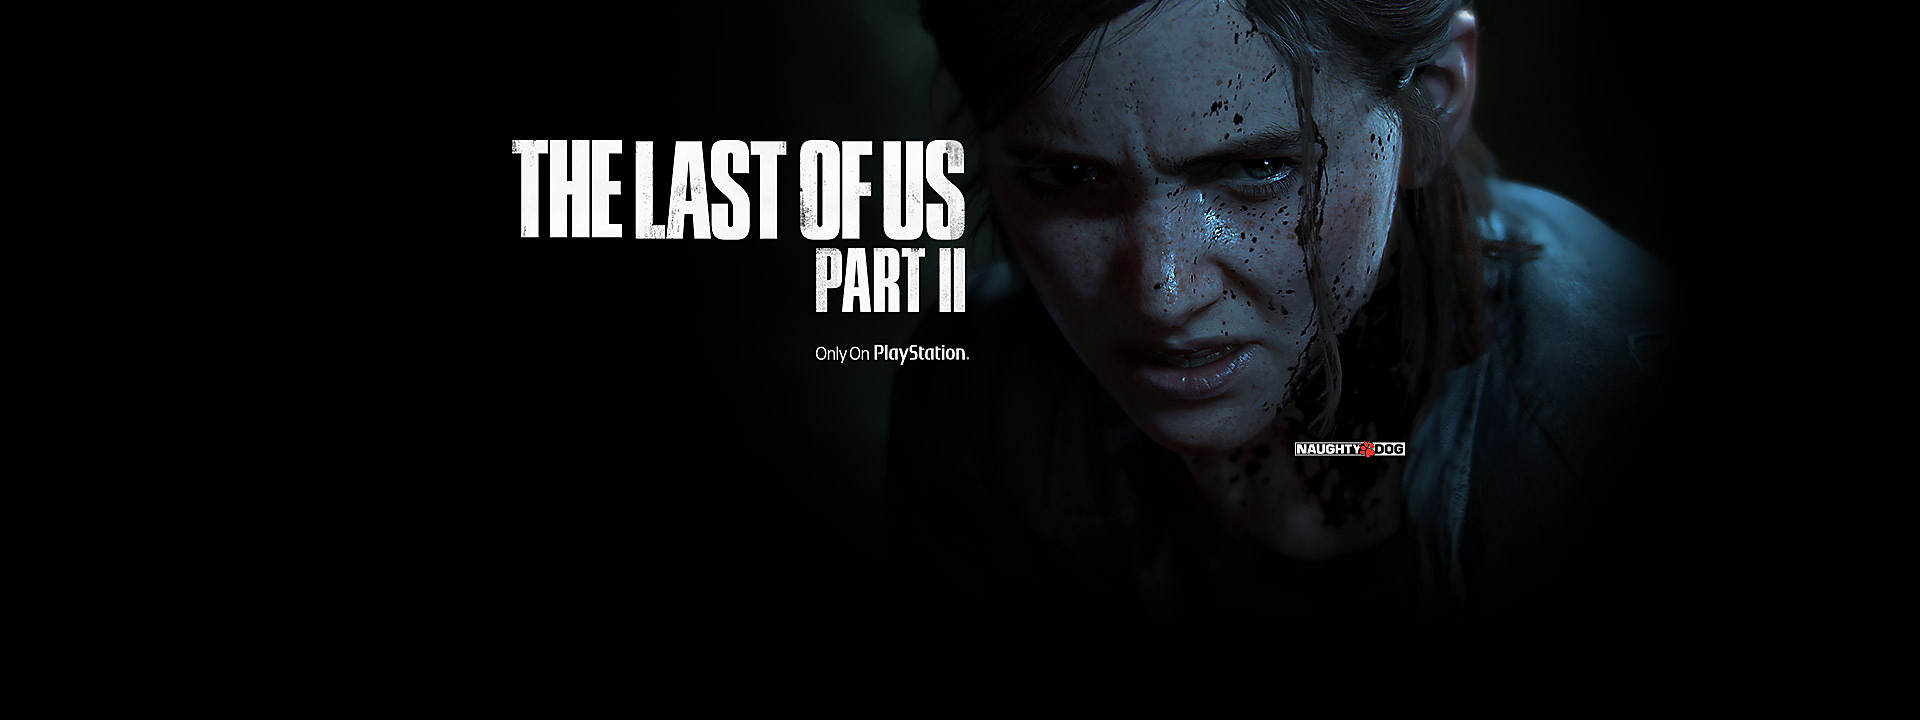 The Last of Us Part II - Coming June 19